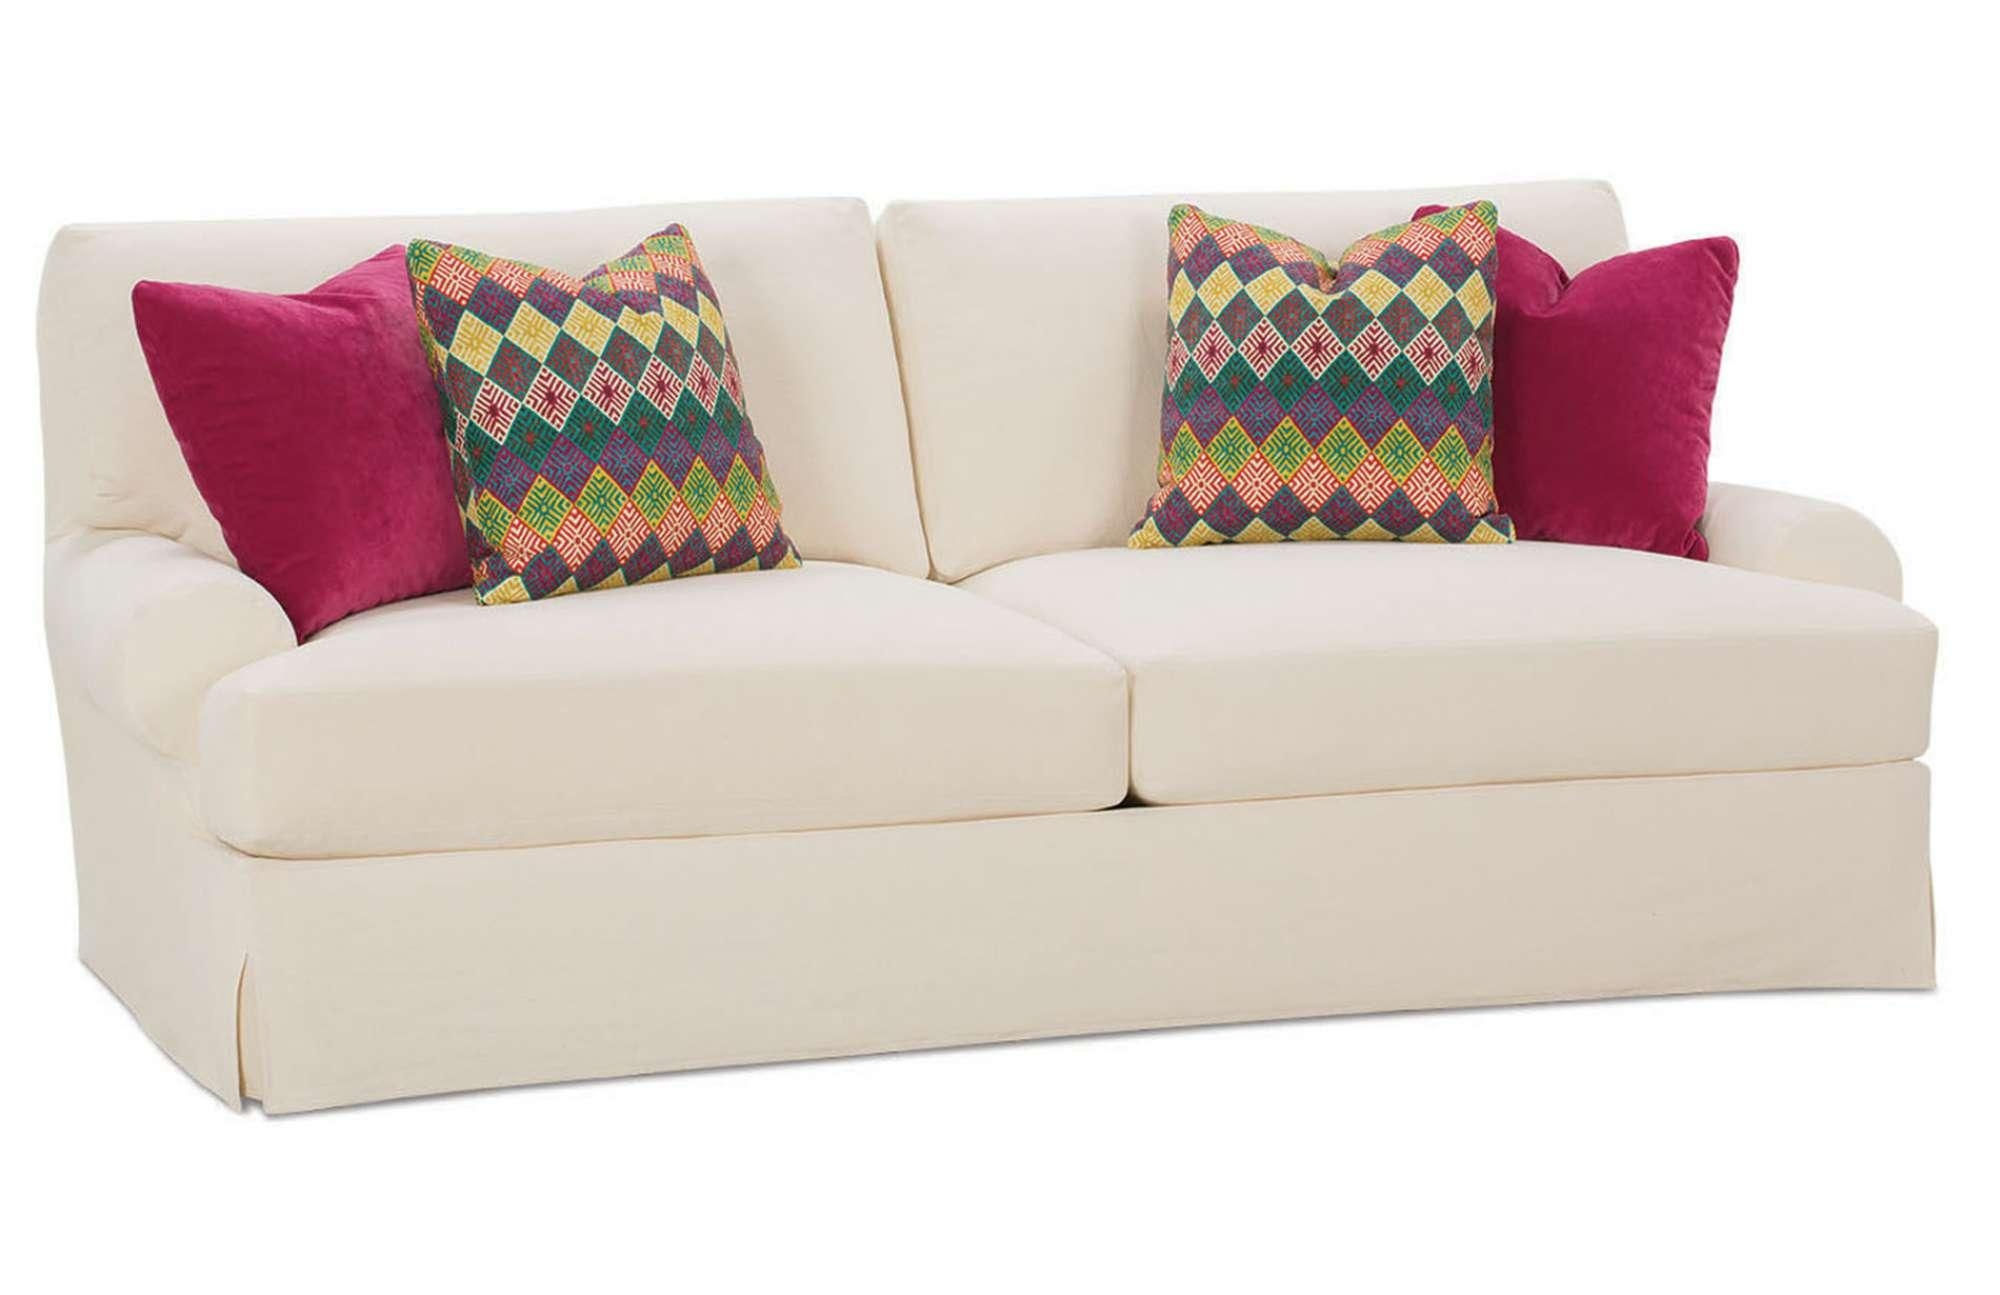 Furniture: Room With A Unique Richness And Sumptuous Softness With In Slipcovers For Sofas And Chairs (Image 15 of 20)